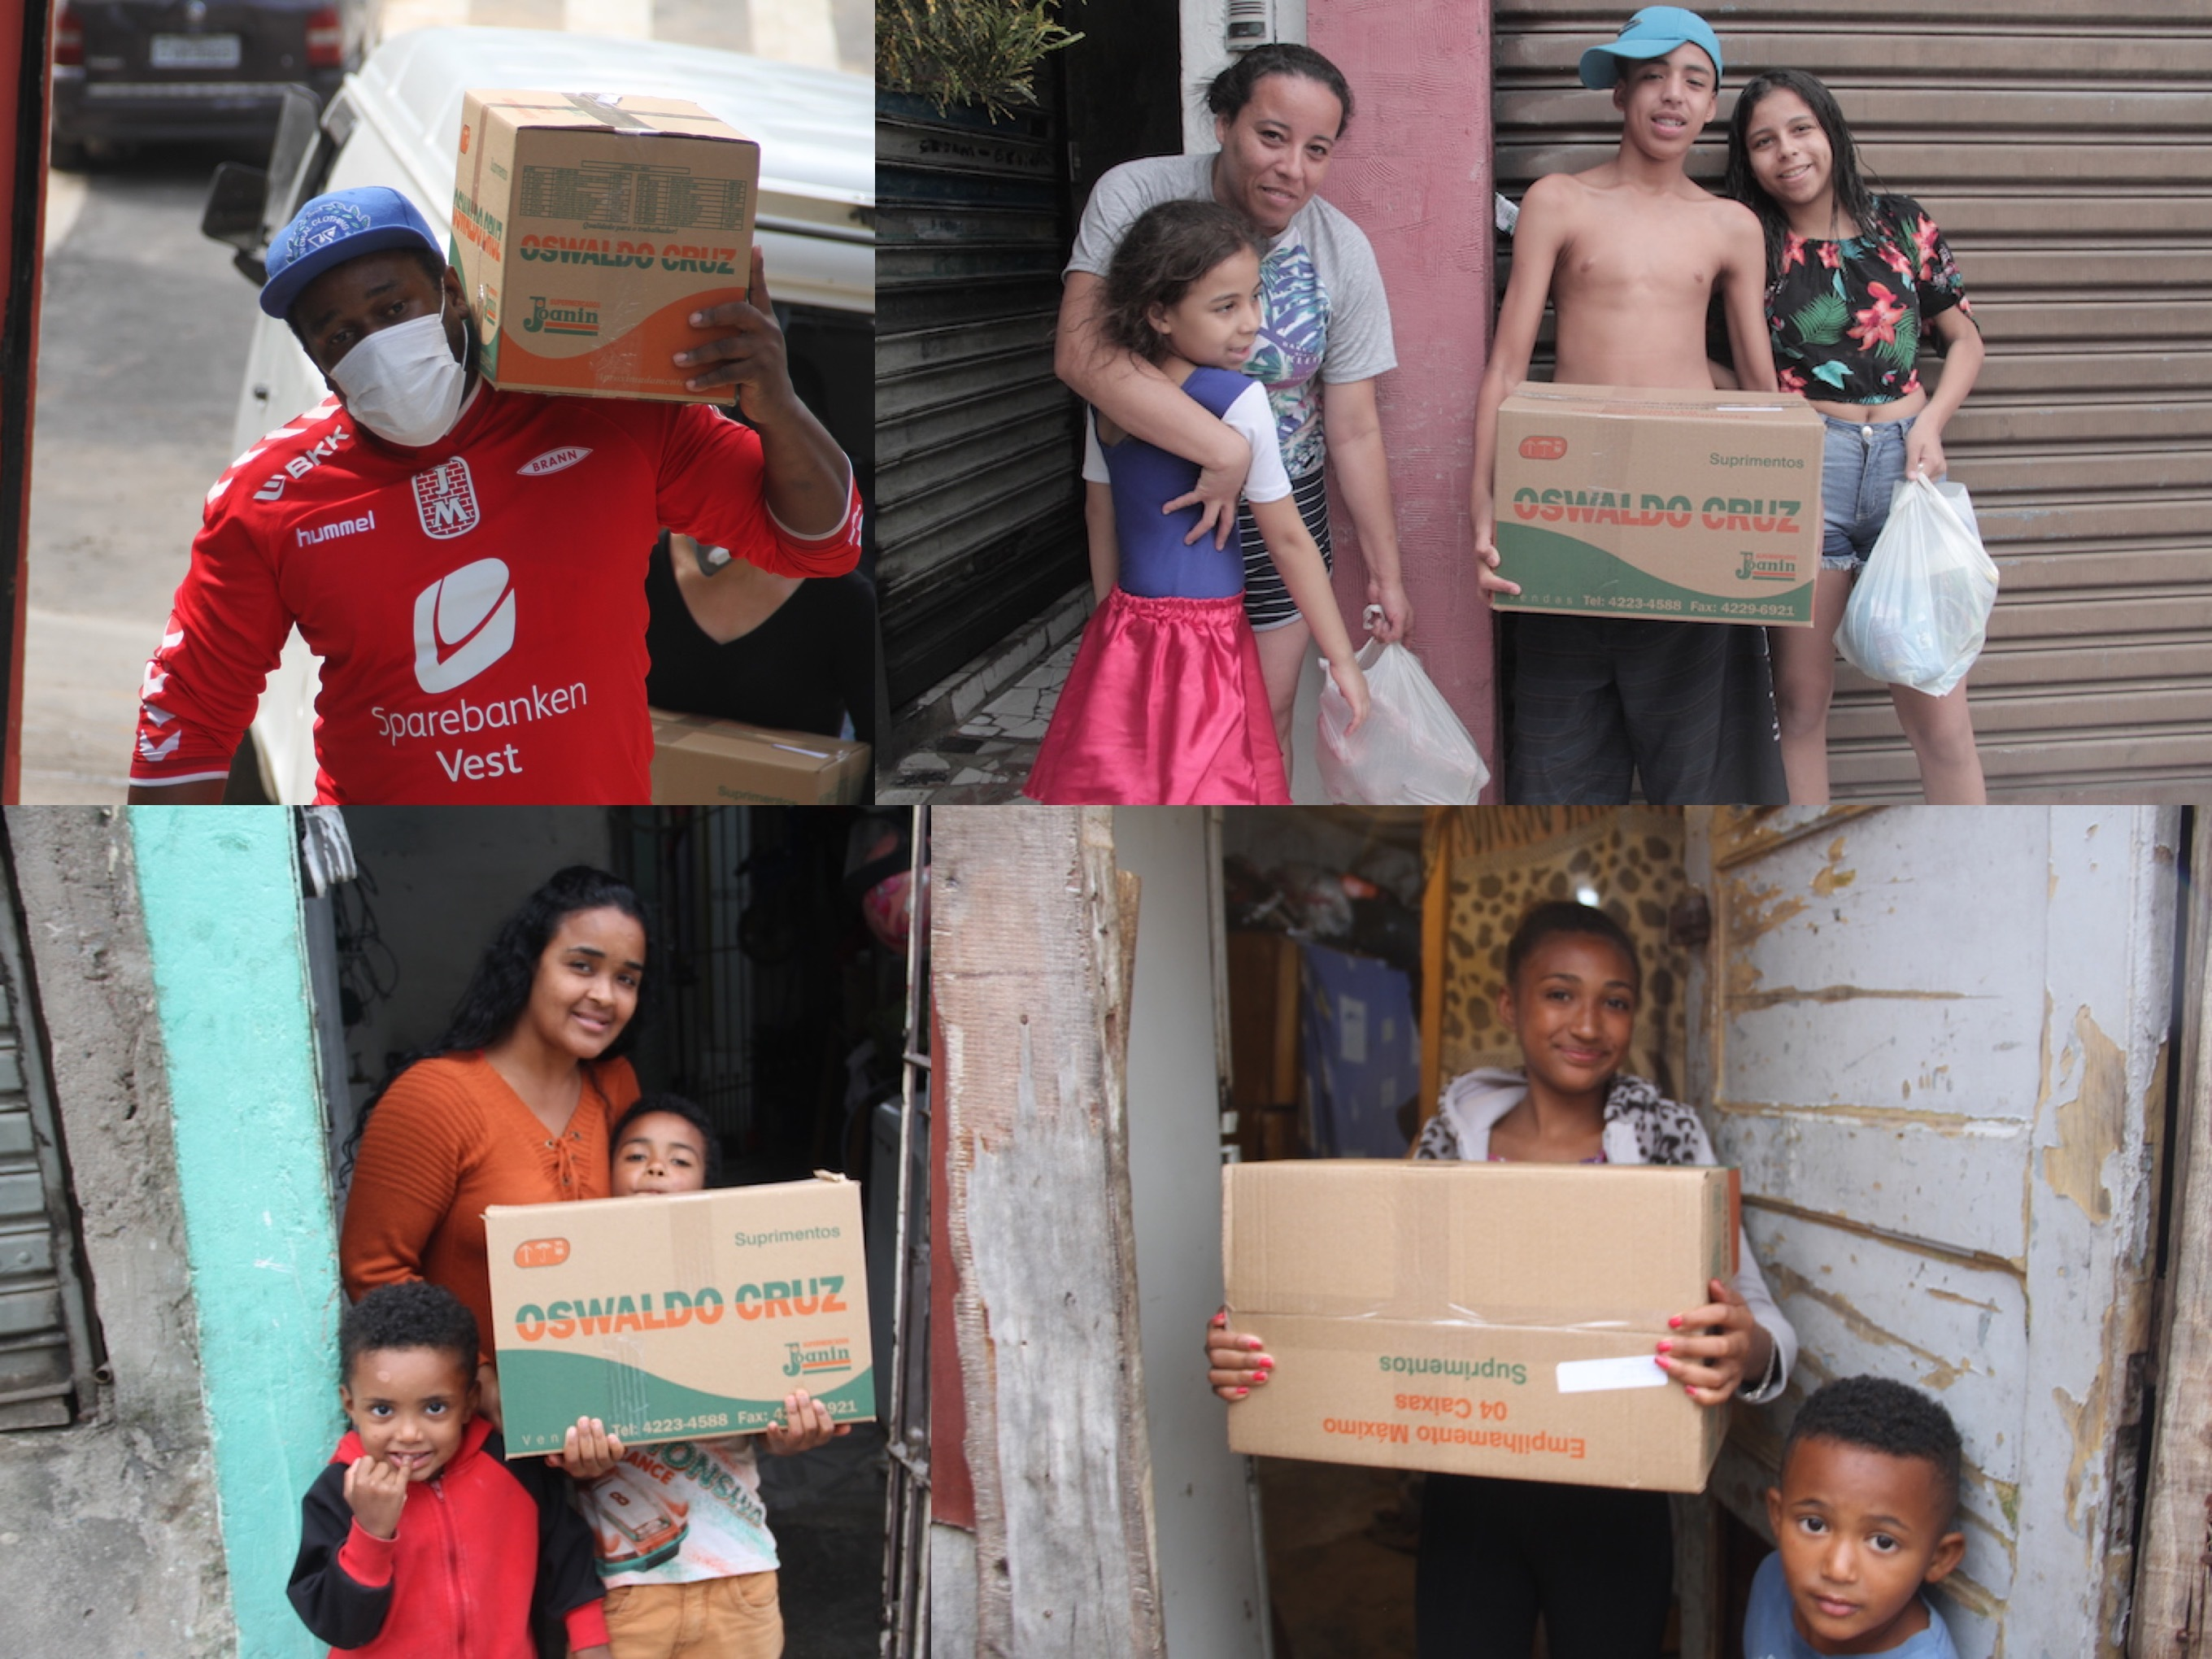 Food Basket delivery; Davi (in his red football shirt) carrying out boxes. The other photos are families in the area.